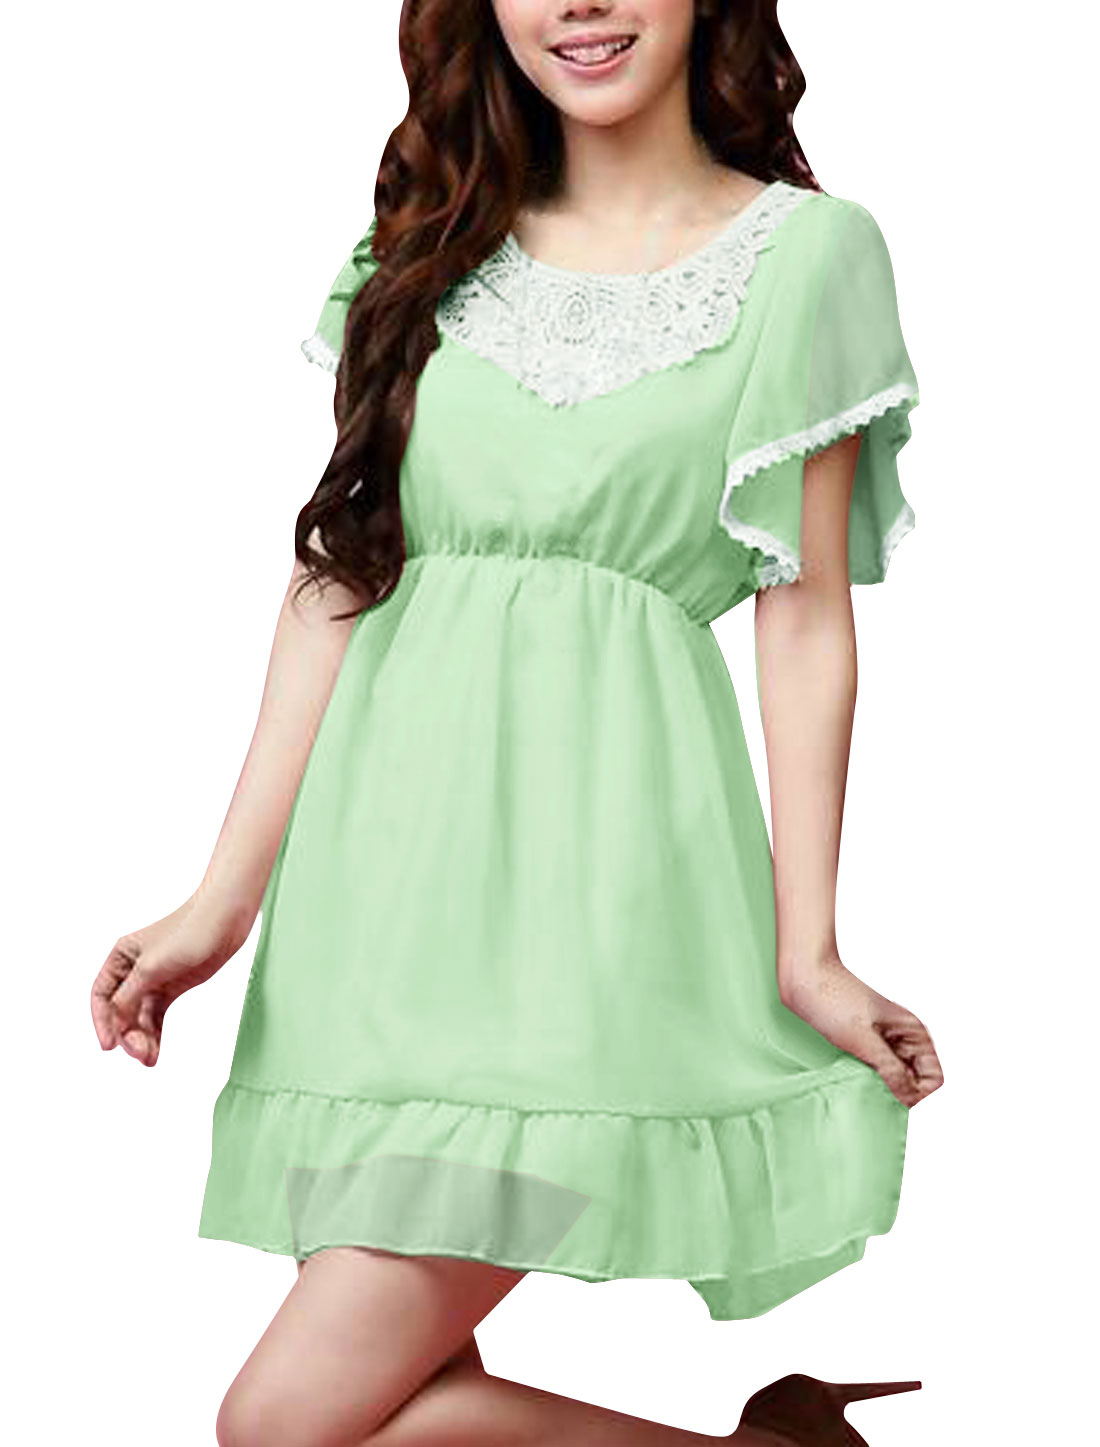 Women Chic Scoop Neck Short Sleeve Ruffled Hem Light Green Mini Dress L